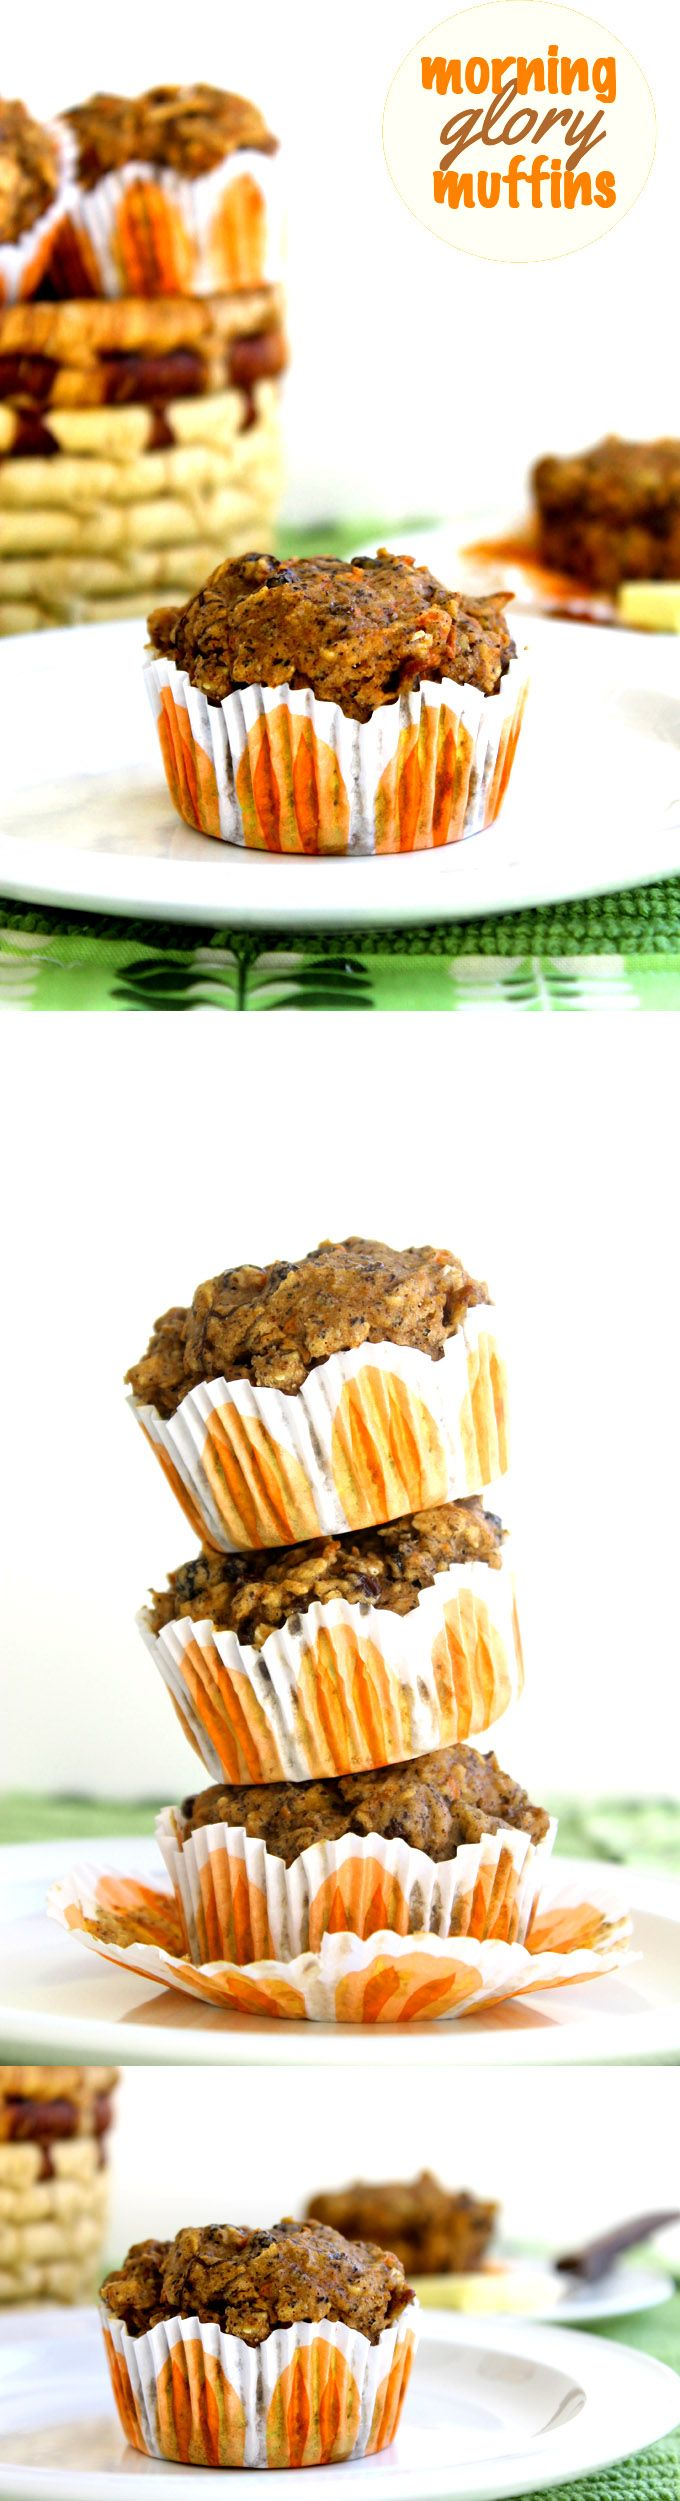 Morning Glory Muffins // TheHealthyMaven.com #glutenfree